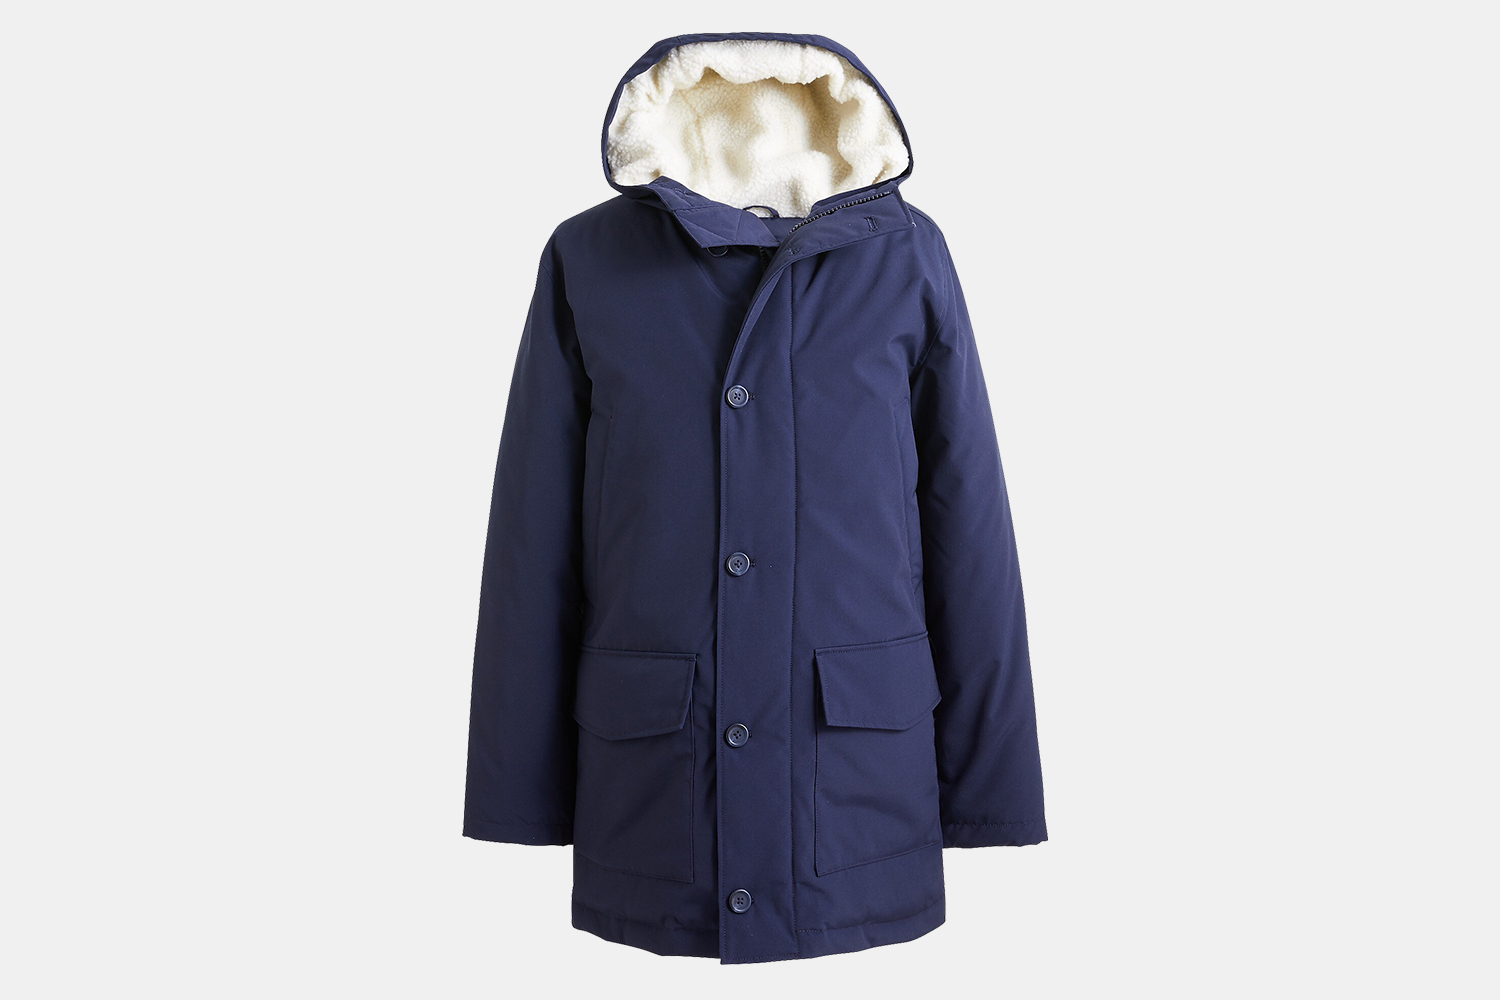 J.Crew Factory Men's Hooded Parka Discount